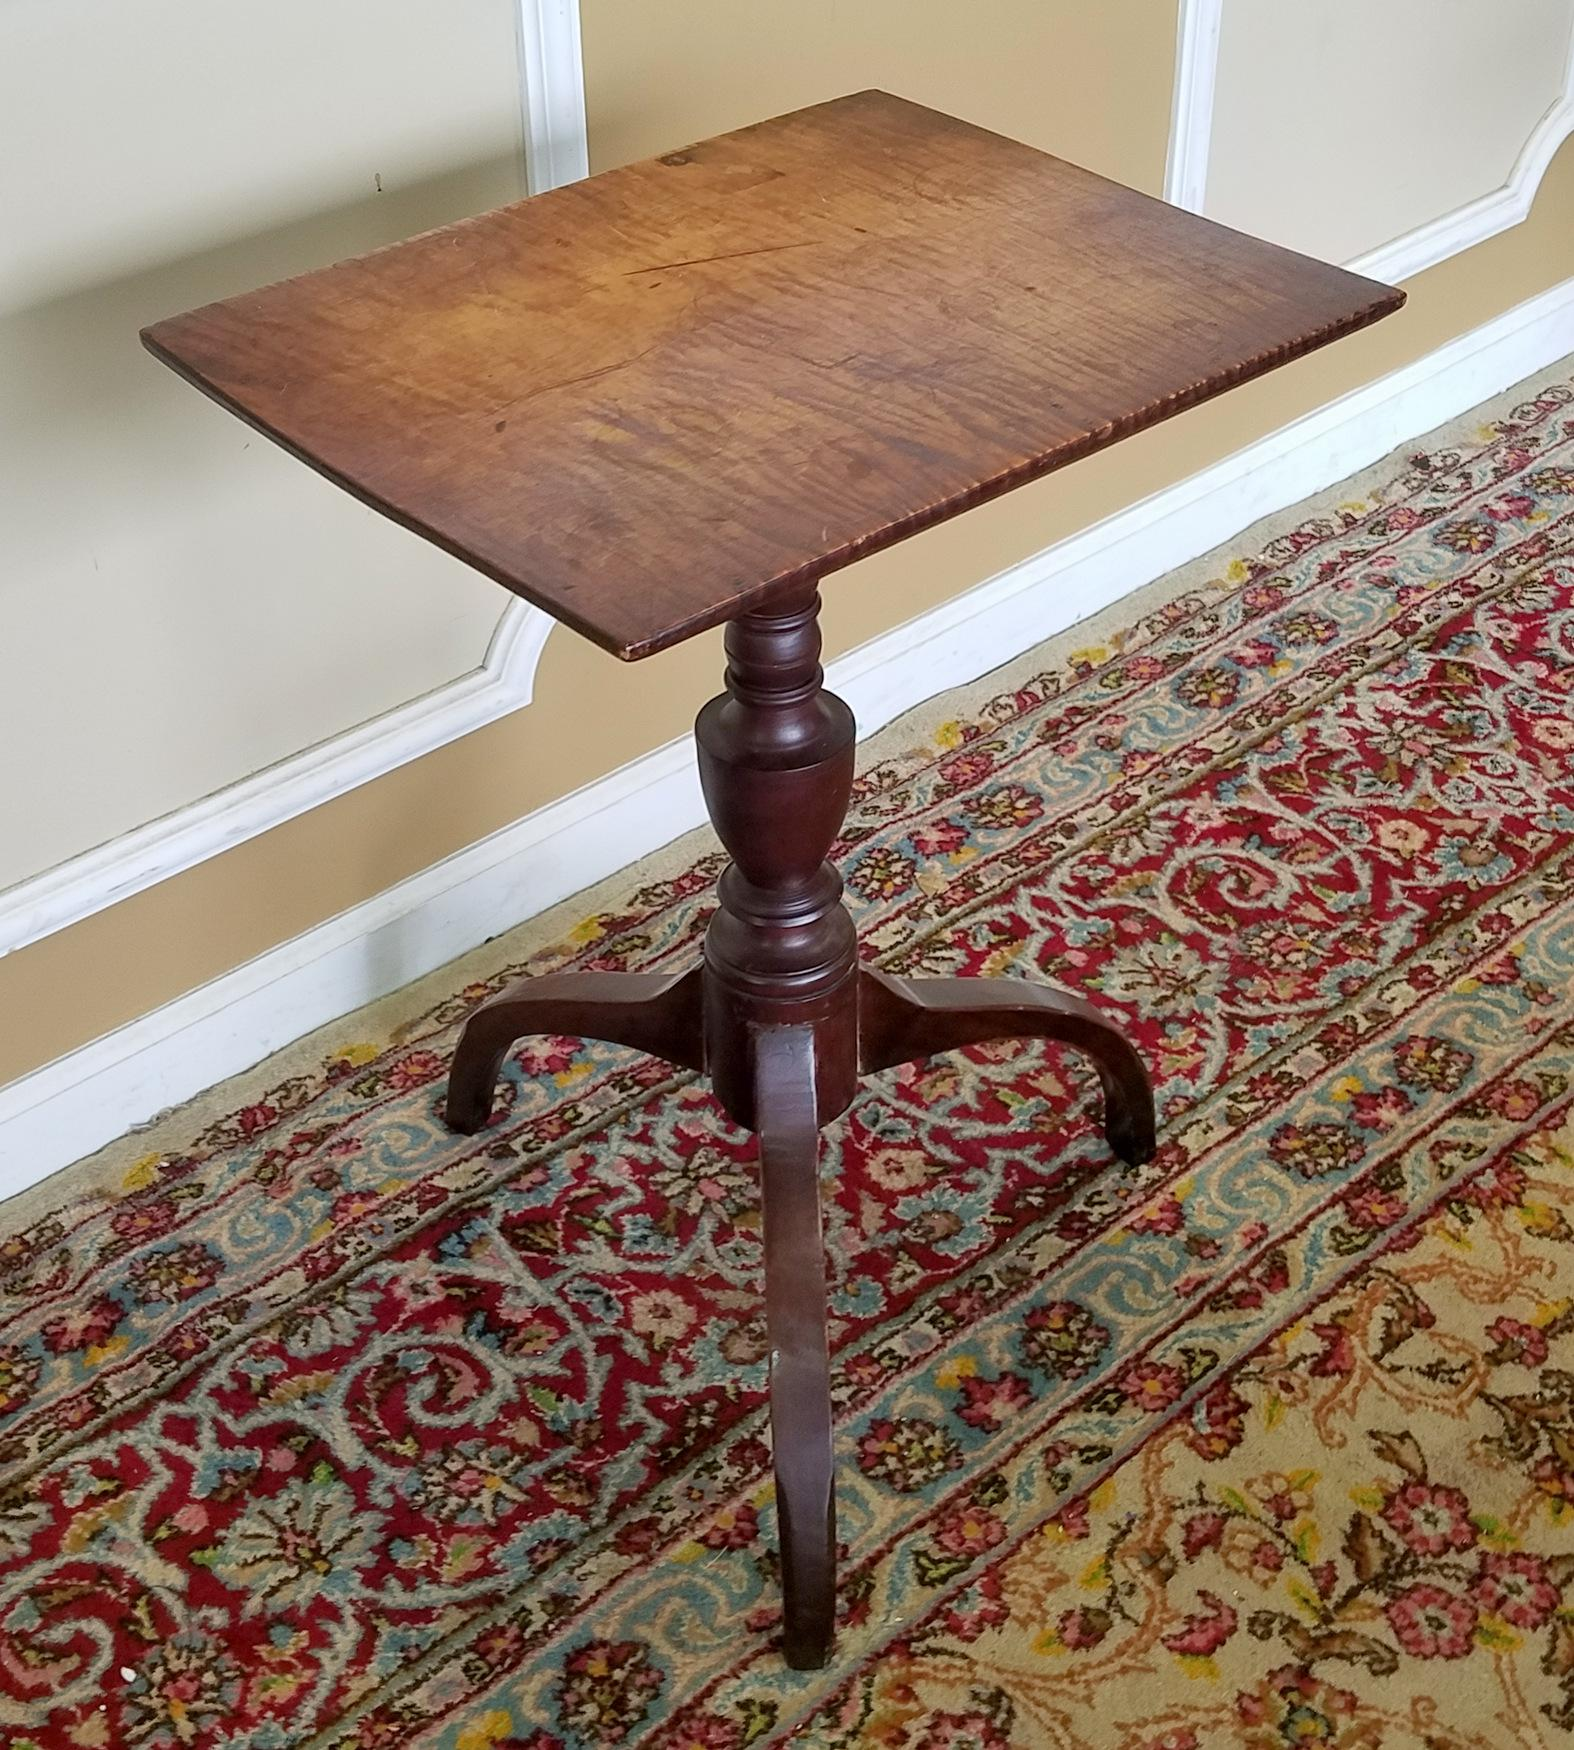 1810 Antique American Federal Tiger Maple Candle Stand Table   Image 4 Of 8